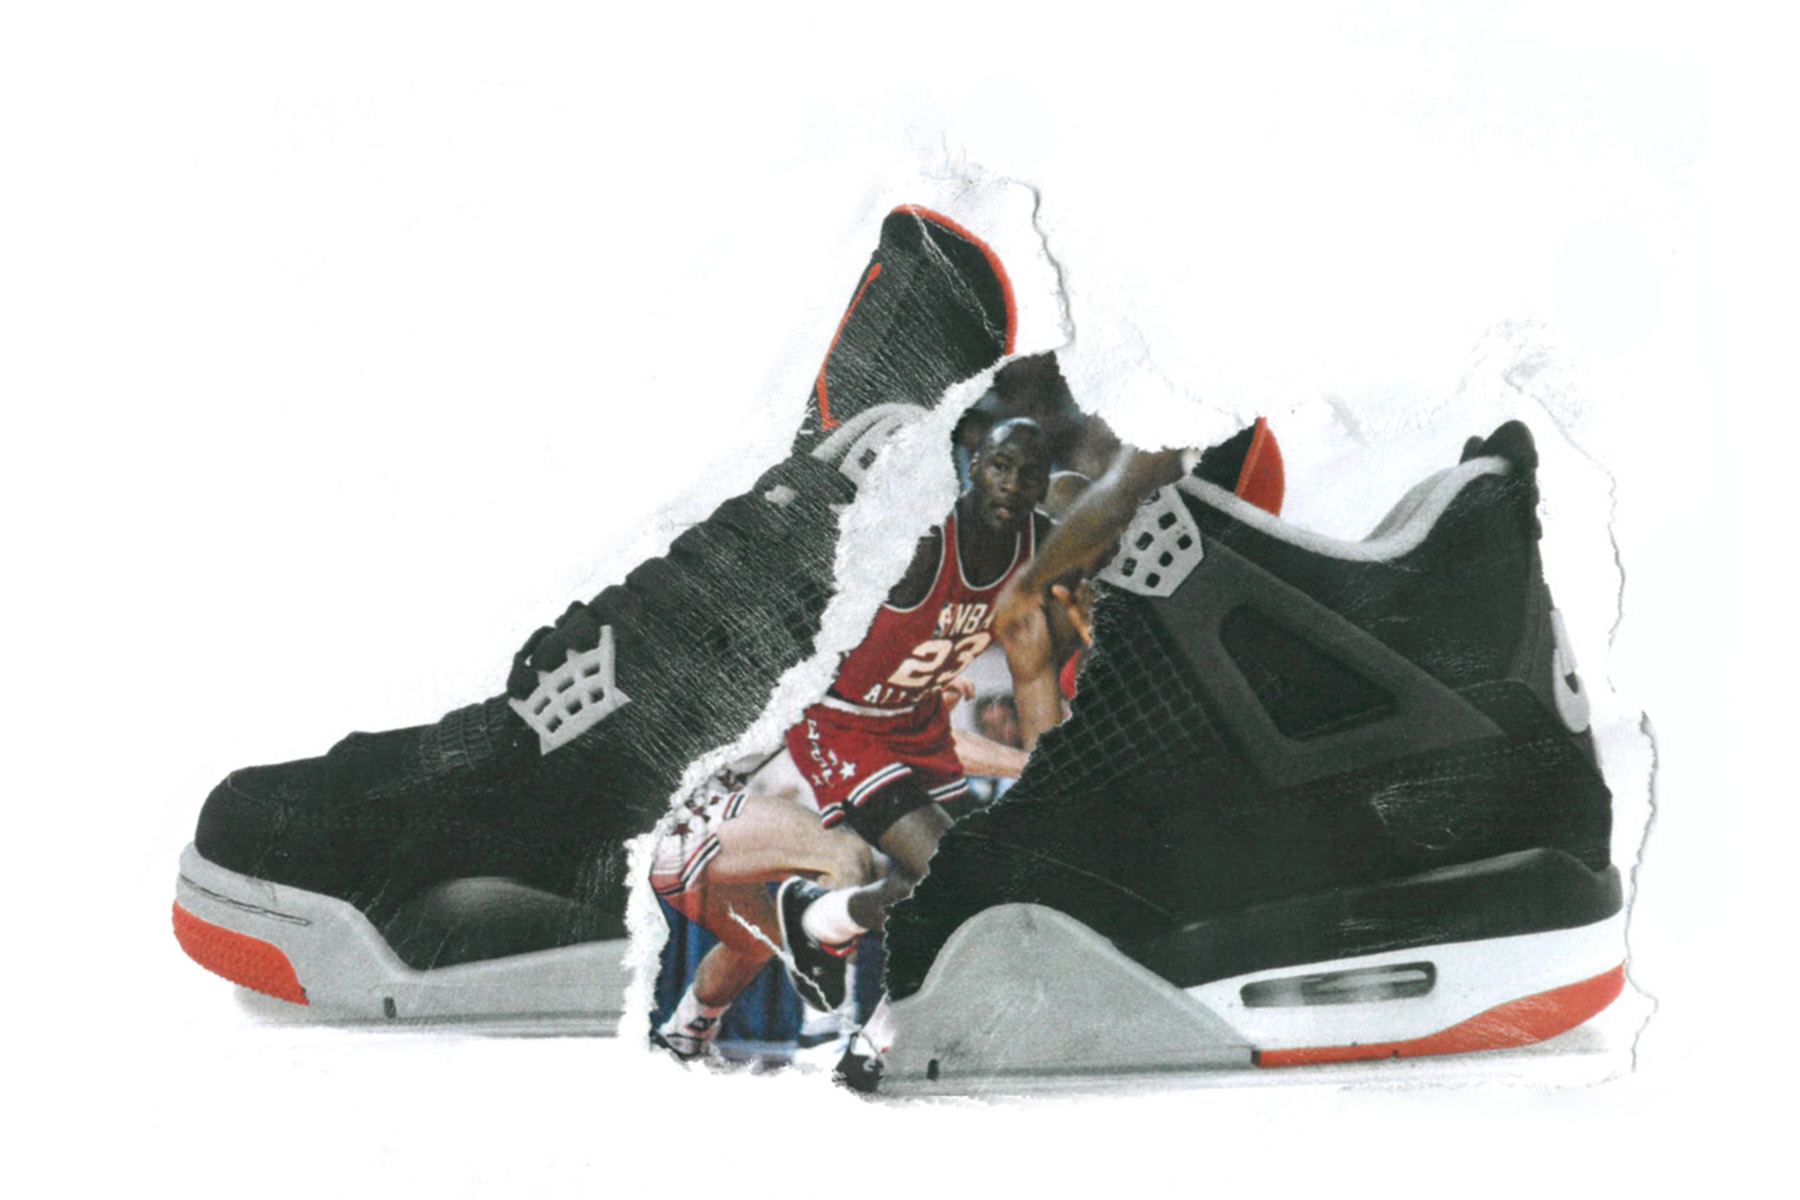 bac5bcd4c74 To celebrate the 30th anniversary of the Air Jordan IV, the icon returns in  an OG colourway first released in 1989. The timeless silhouette is crafted  to ...